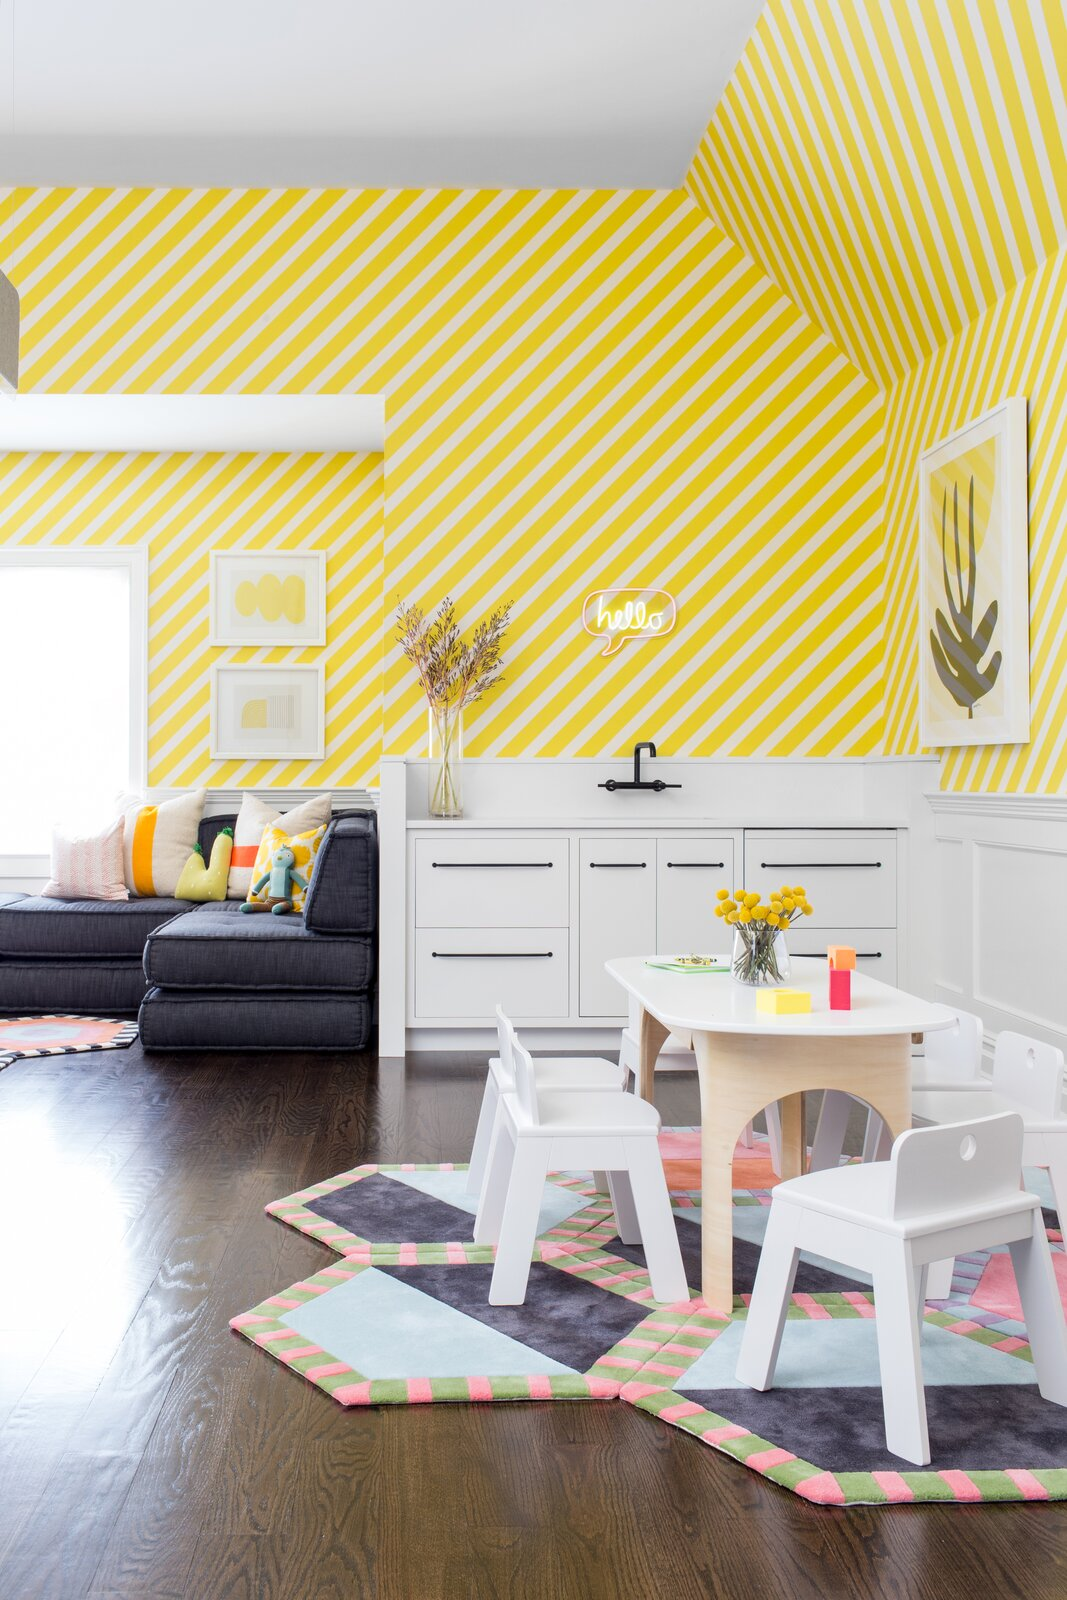 A playroom in Rumson, New Jersey, designed by Chango & Co. features a kitchenette and bold, striped yellow wallpaper. The table and chairs are from Land of Nod, and underfoot is a rug from Kinder MODERN.  Photo 9 of 13 in How to Design a Room That Grows Up With Your Kids